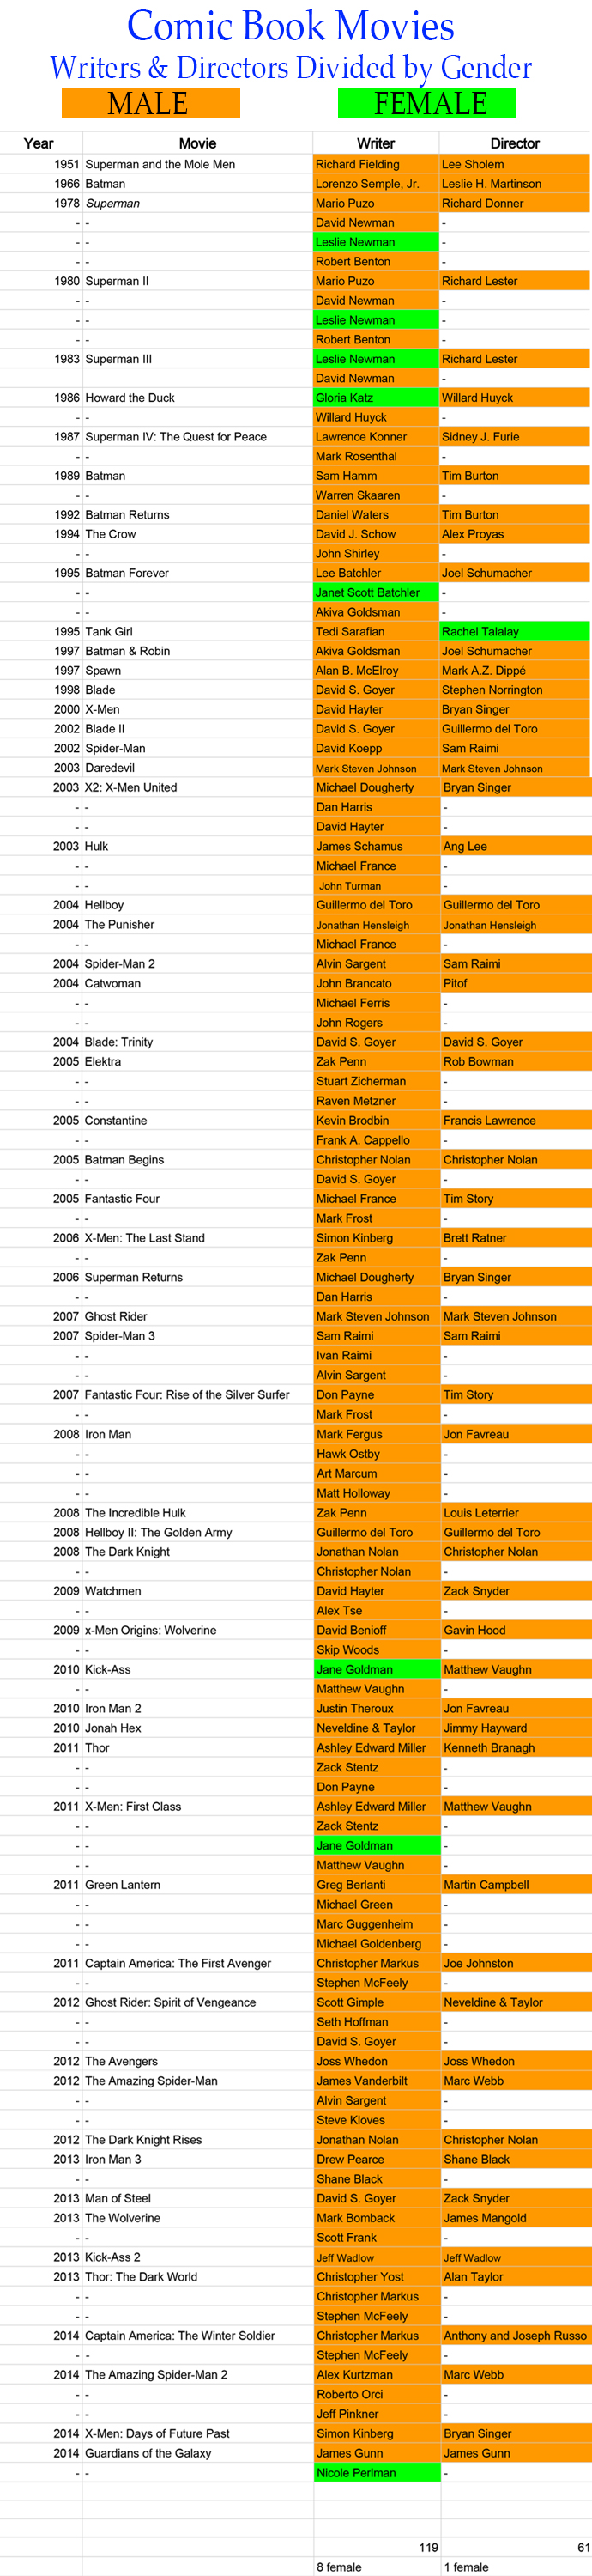 Table of comic book movies directors and writers broken down by gender.